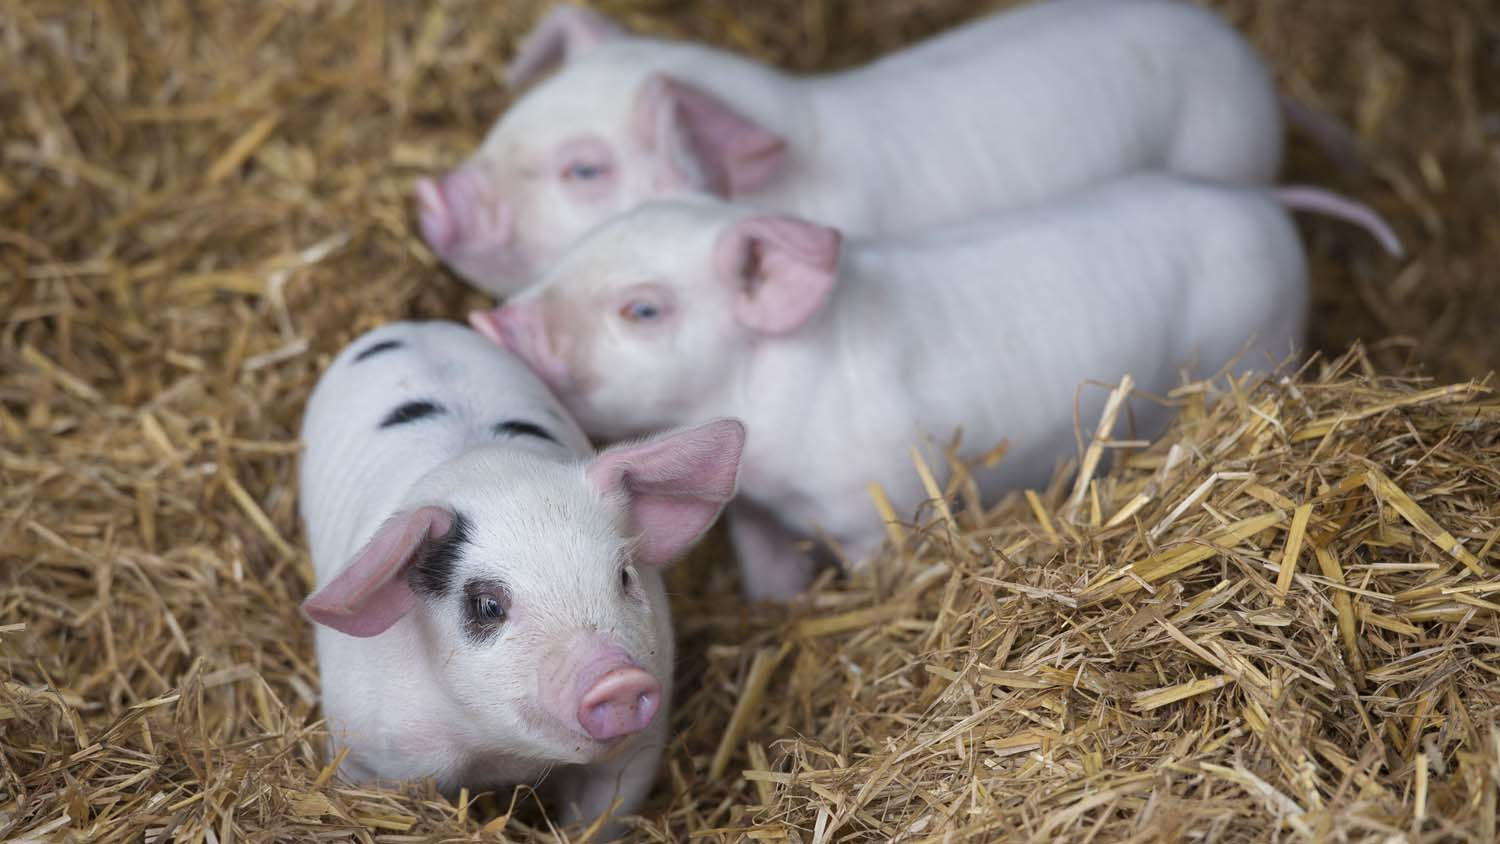 Activists hit out at school's pig farm project over 'animal exploitation'